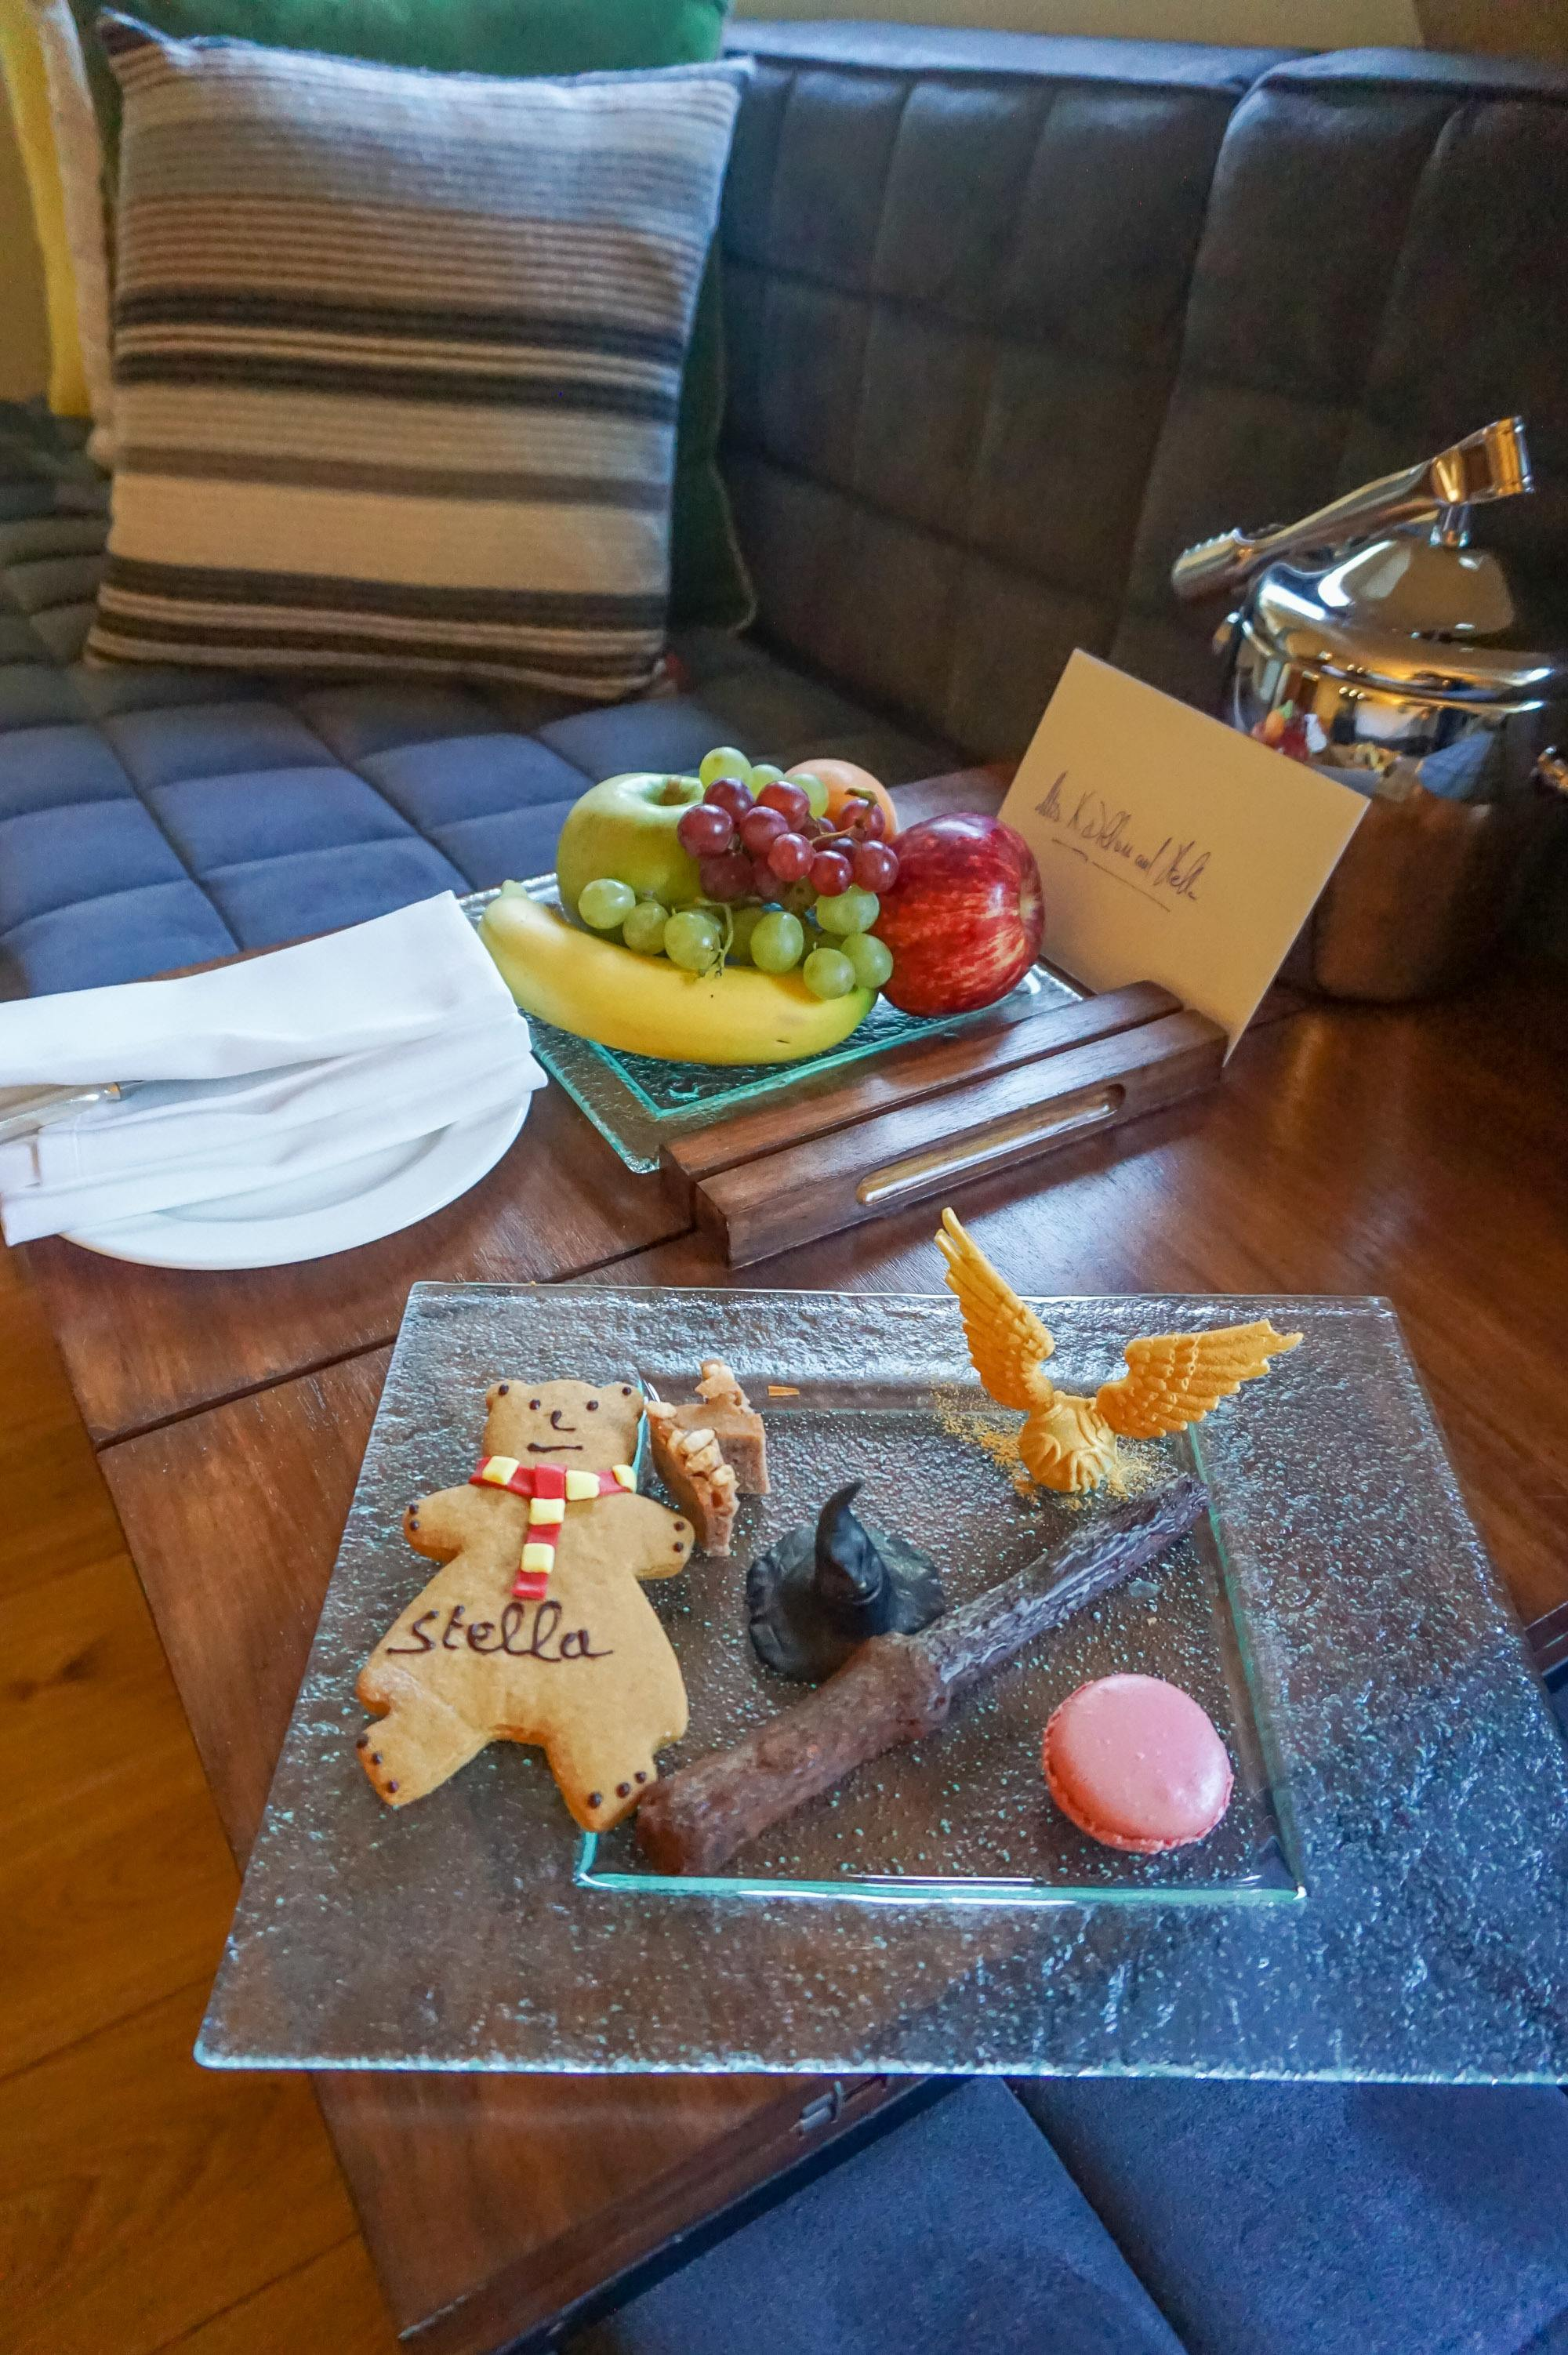 A Harry Potter welcome amenity at Brown's Hotel in London.